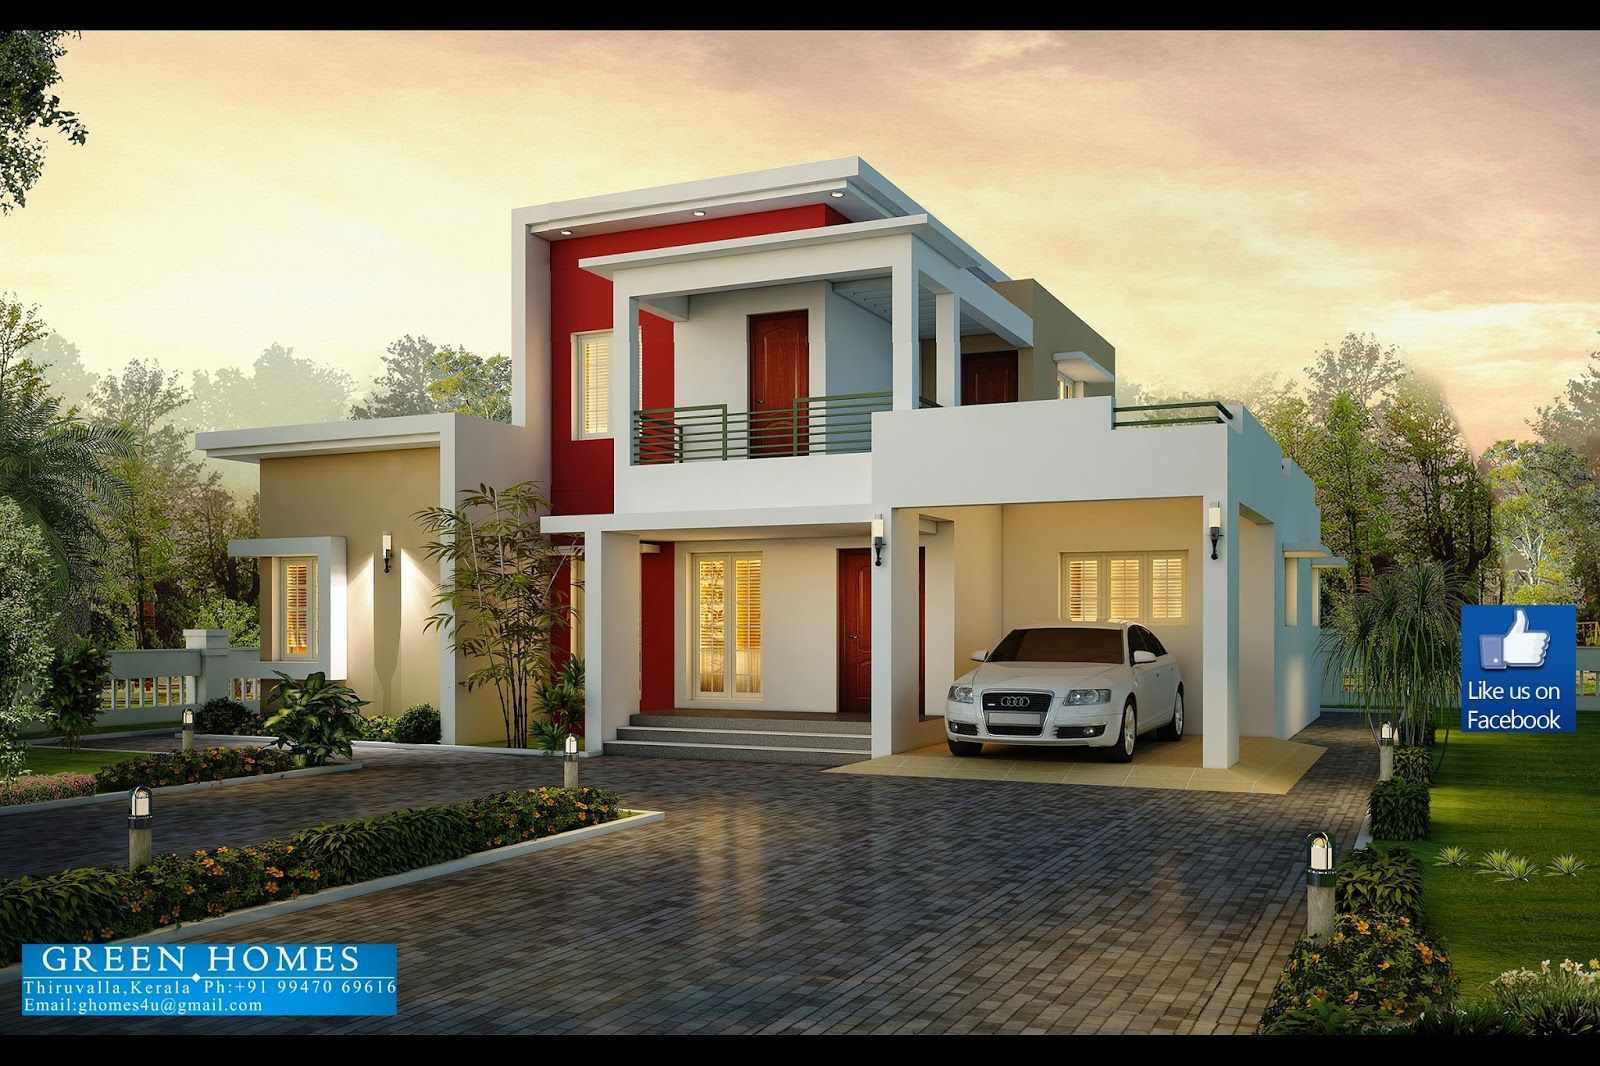 Nice 3-BED ROOM CONTEMPORARY HOME Part - 3: 3-Bedroom Section 8 Homes Modern 3 Bedroom House Designs